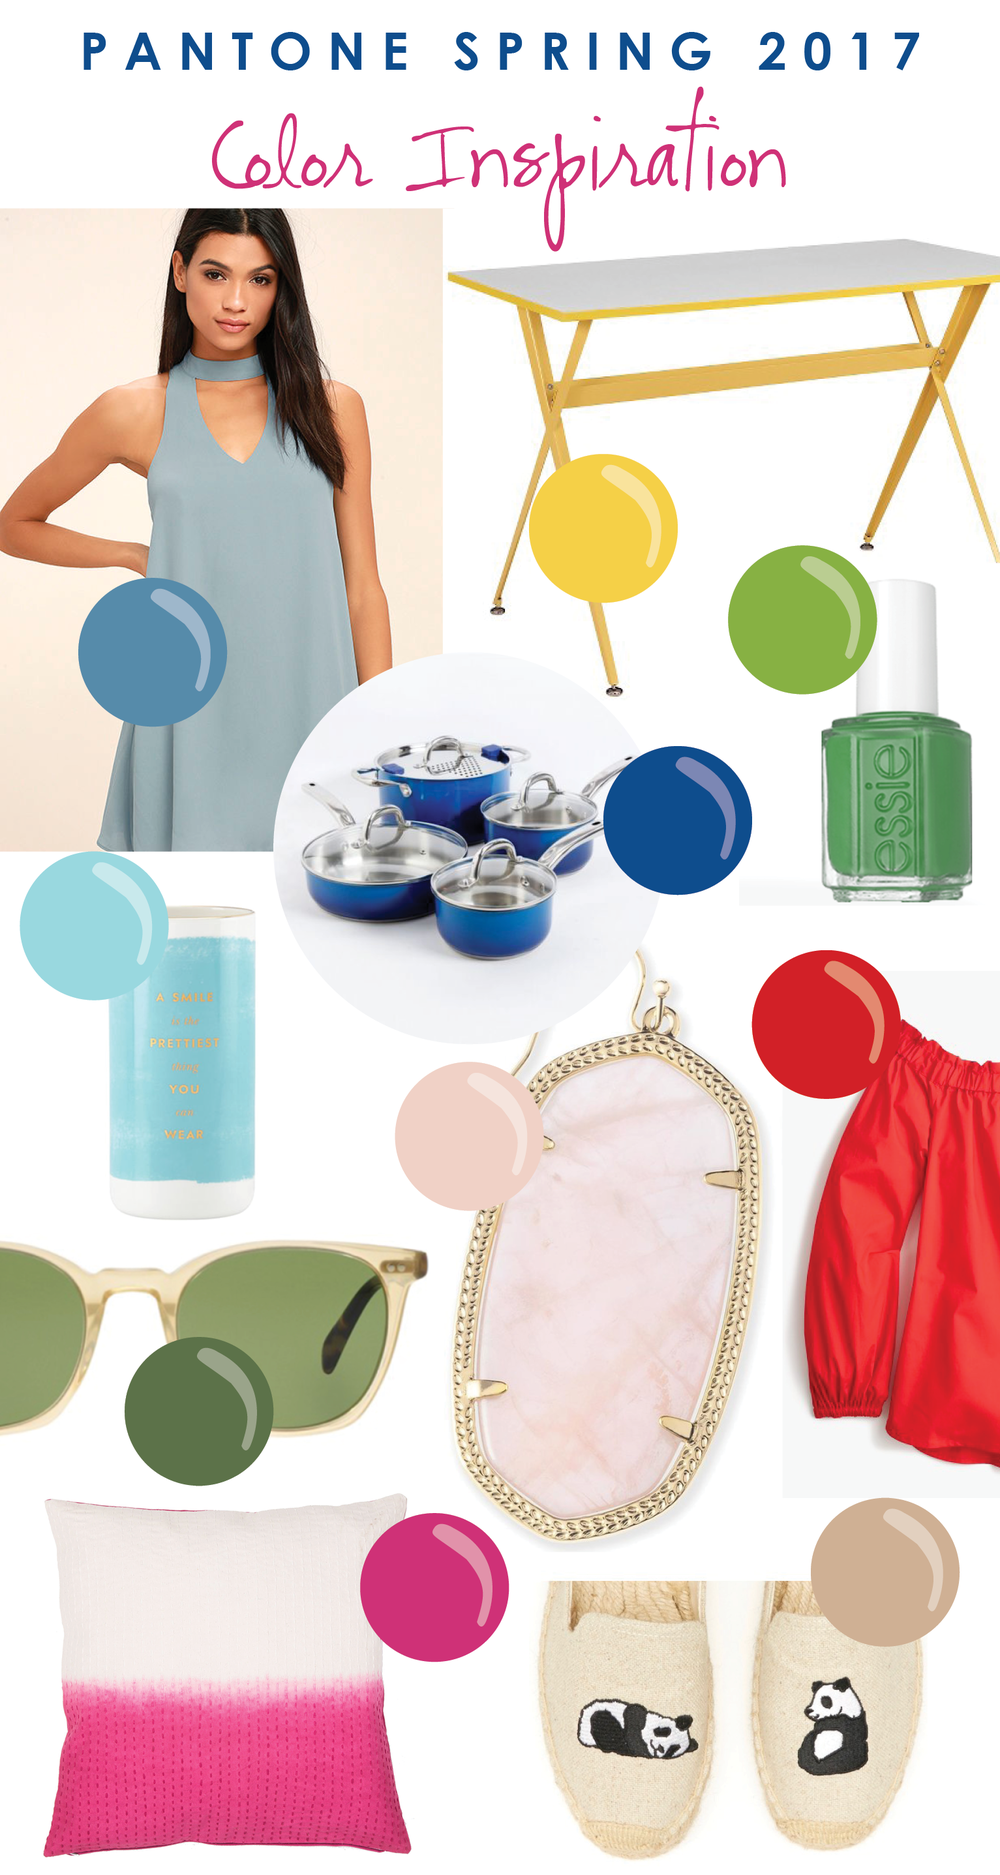 Spring 2017 Pantone Color inspiration board